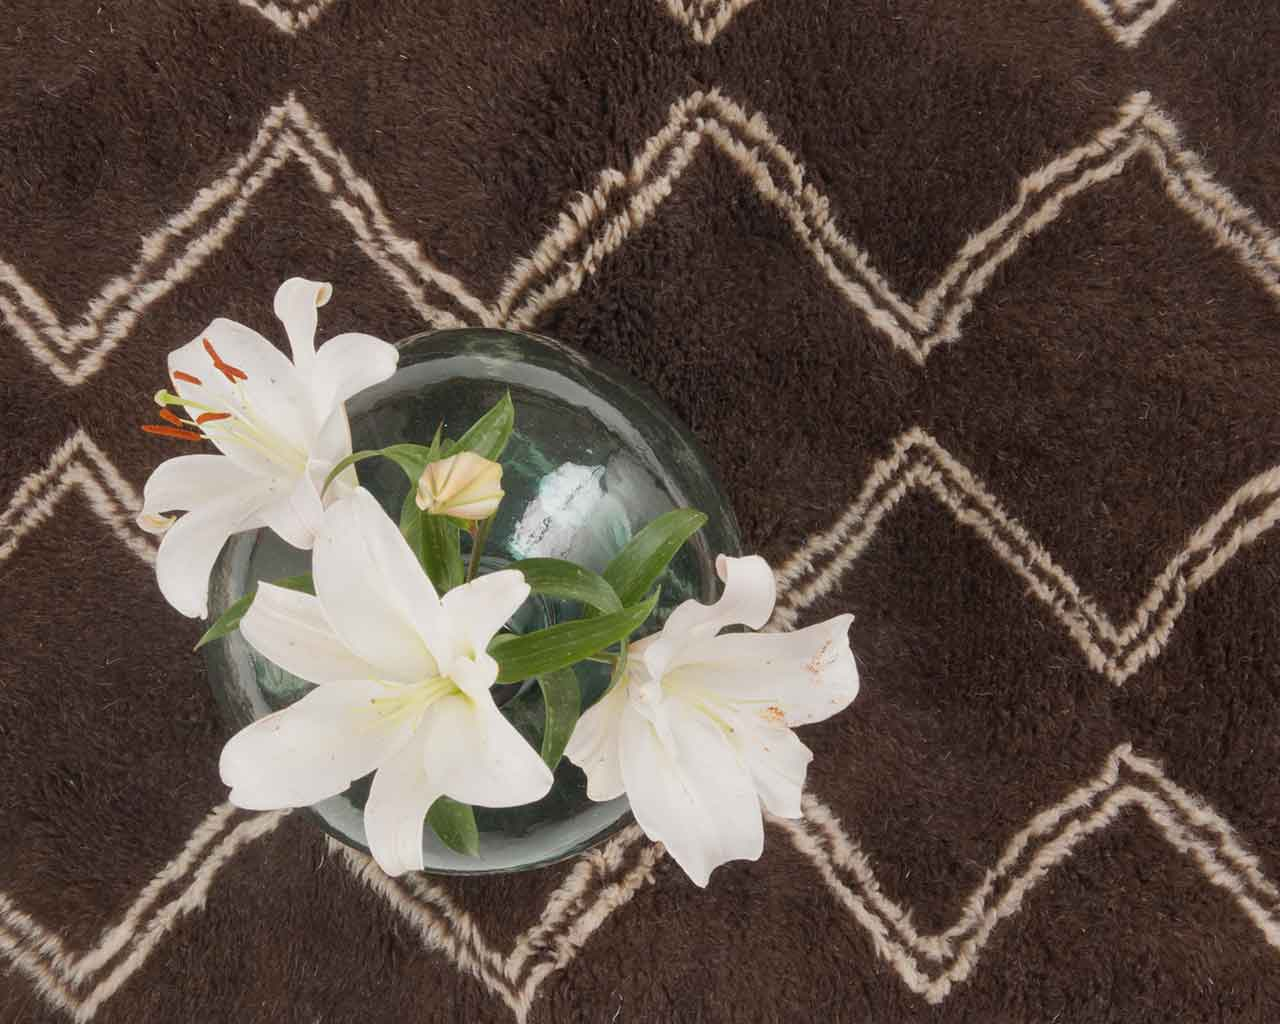 white flowers vase beni ourain rugs moroccan 1